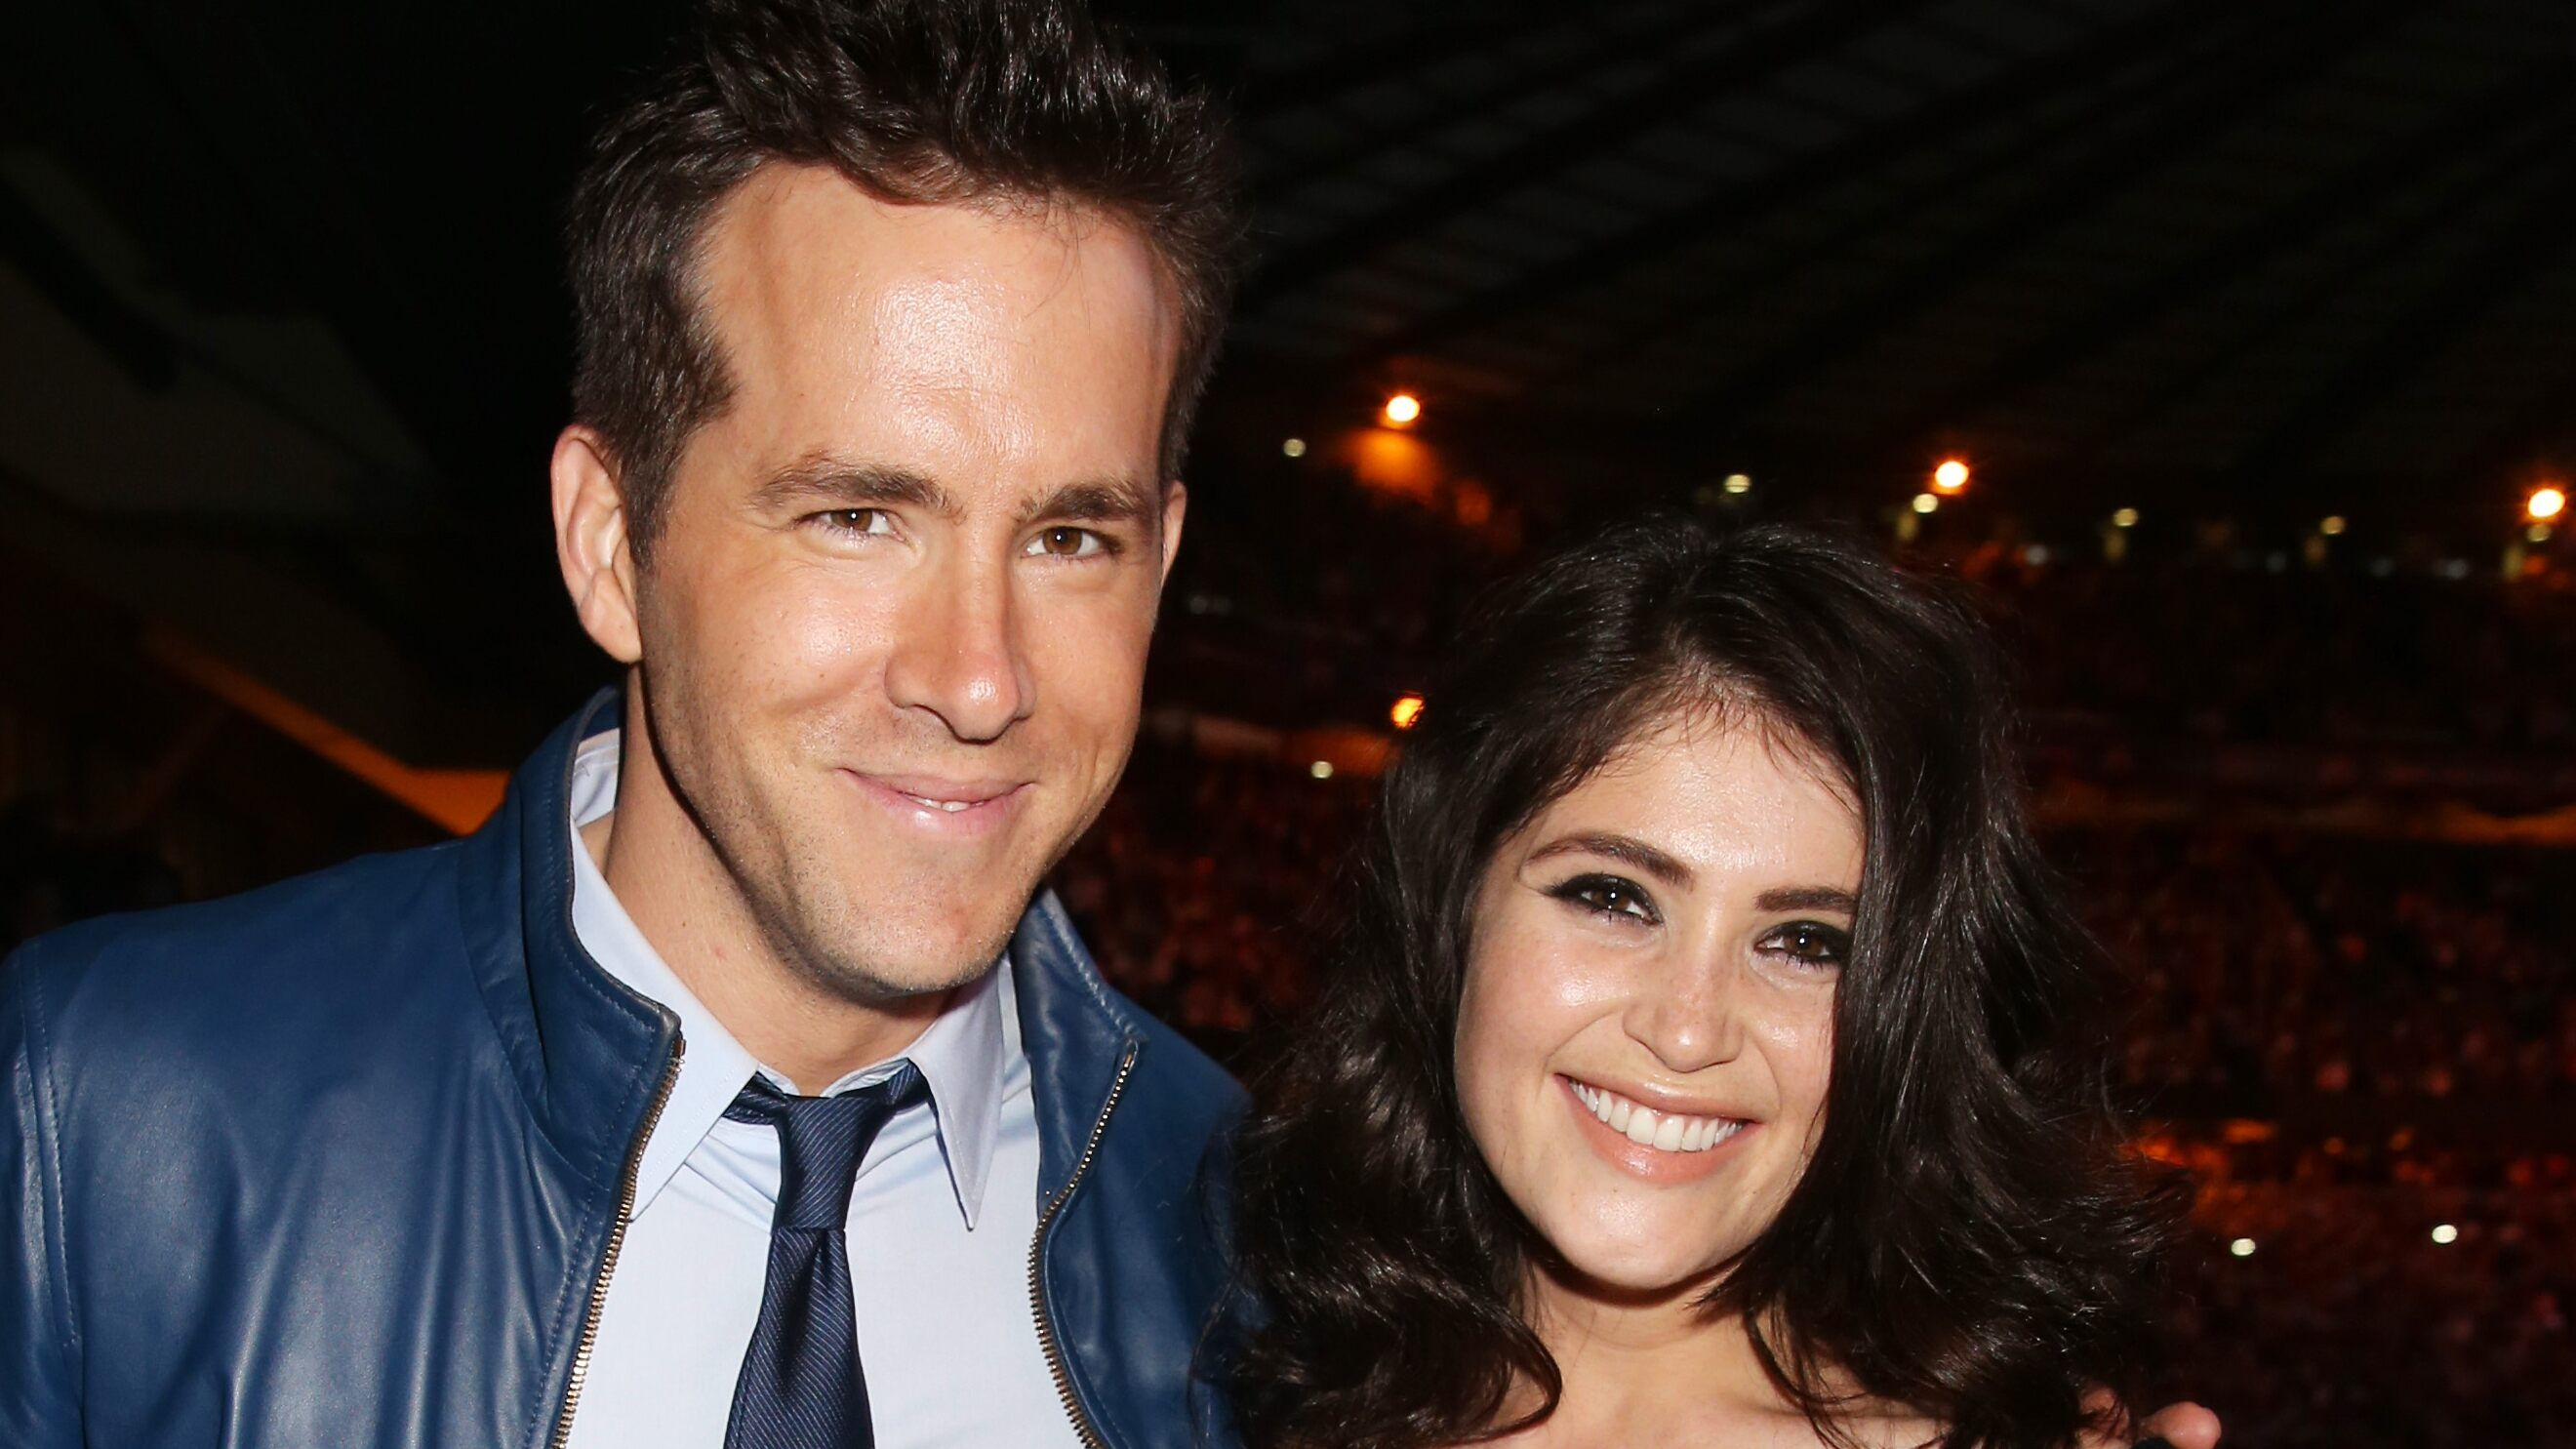 FOX NEWS Salma Hayek hilariously trolls Ryan Reynolds on